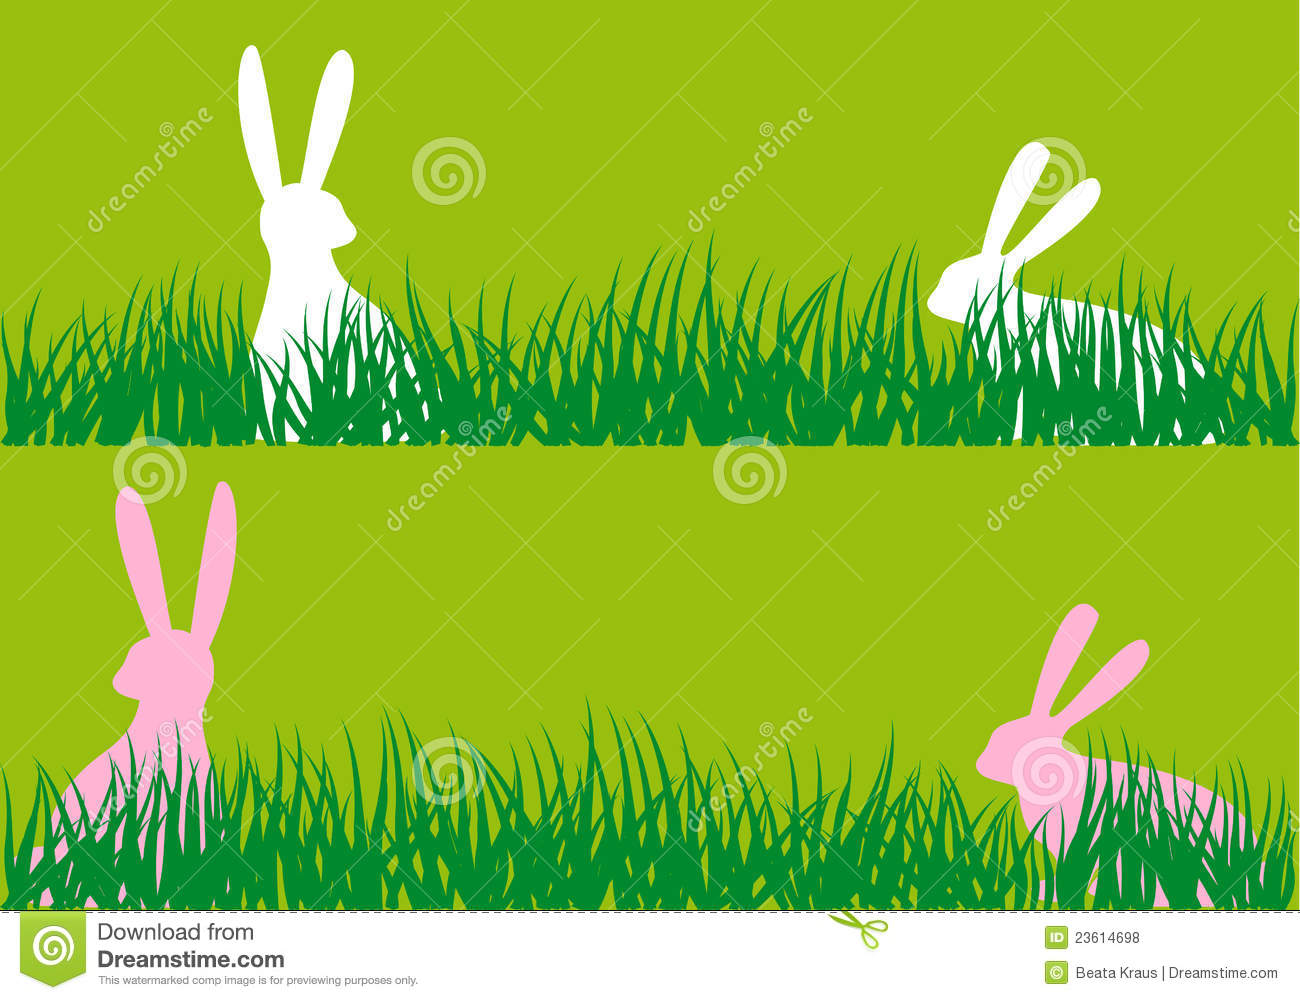 Easter Bunnies in Grass Image